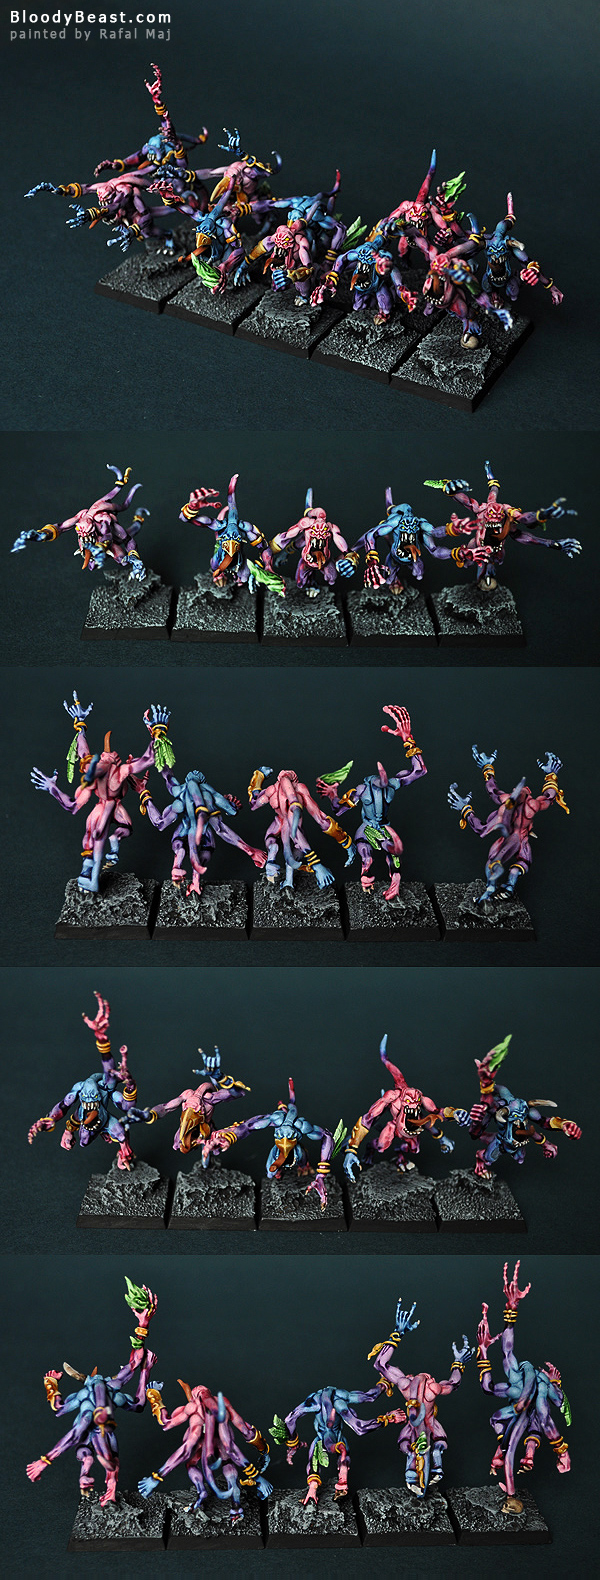 Pink Horrors of Tzeentch painted by Rafal Maj (BloodyBeast.com)